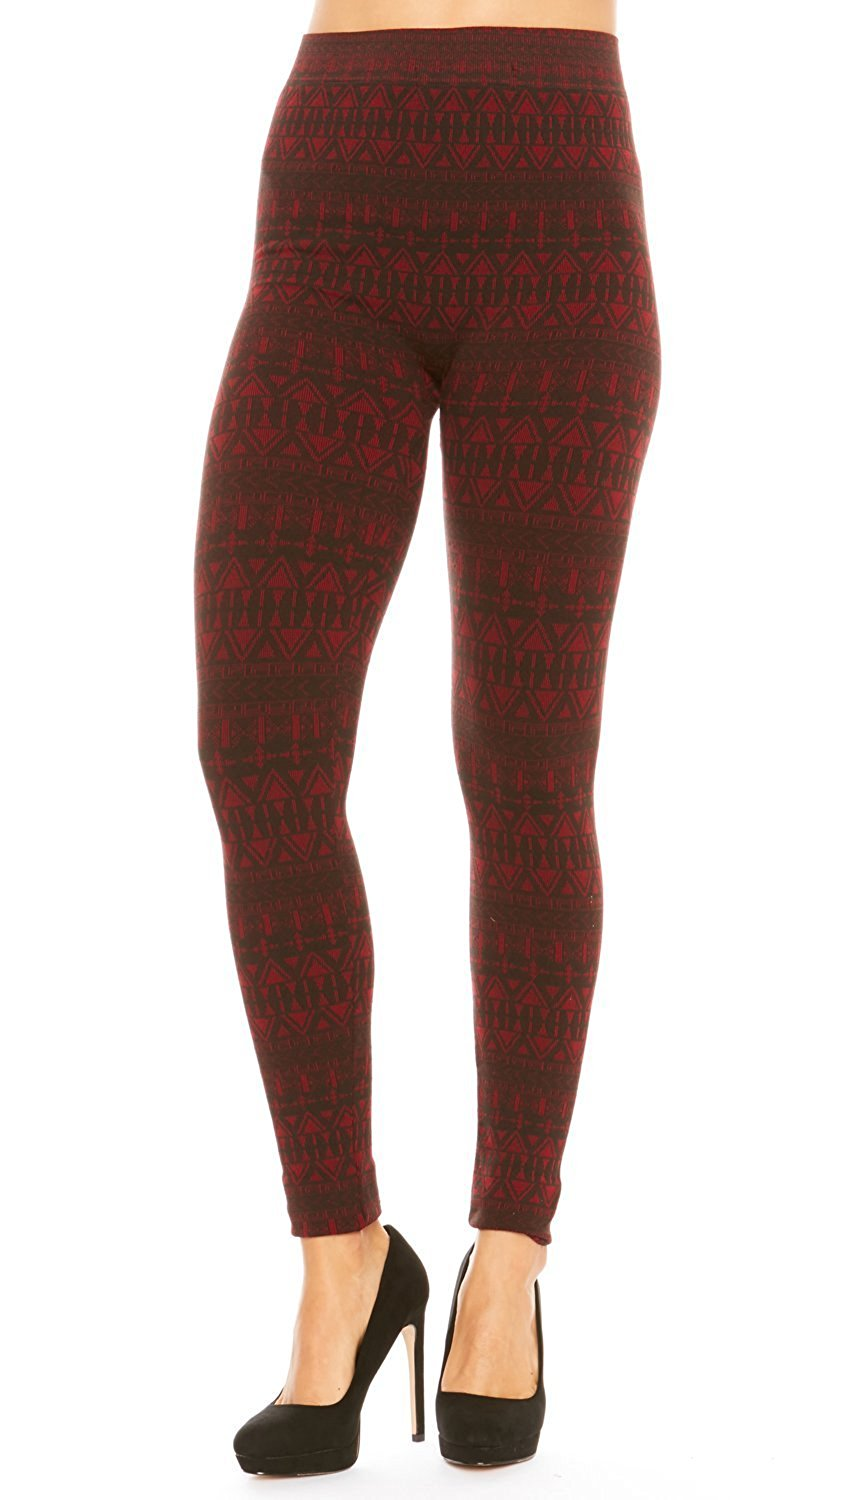 88d5d983b2201 Get Quotations · Just One Women's Leggings Winter Warm French Terry Ultra  Soft Cotton Blend Solid Seamless, 1